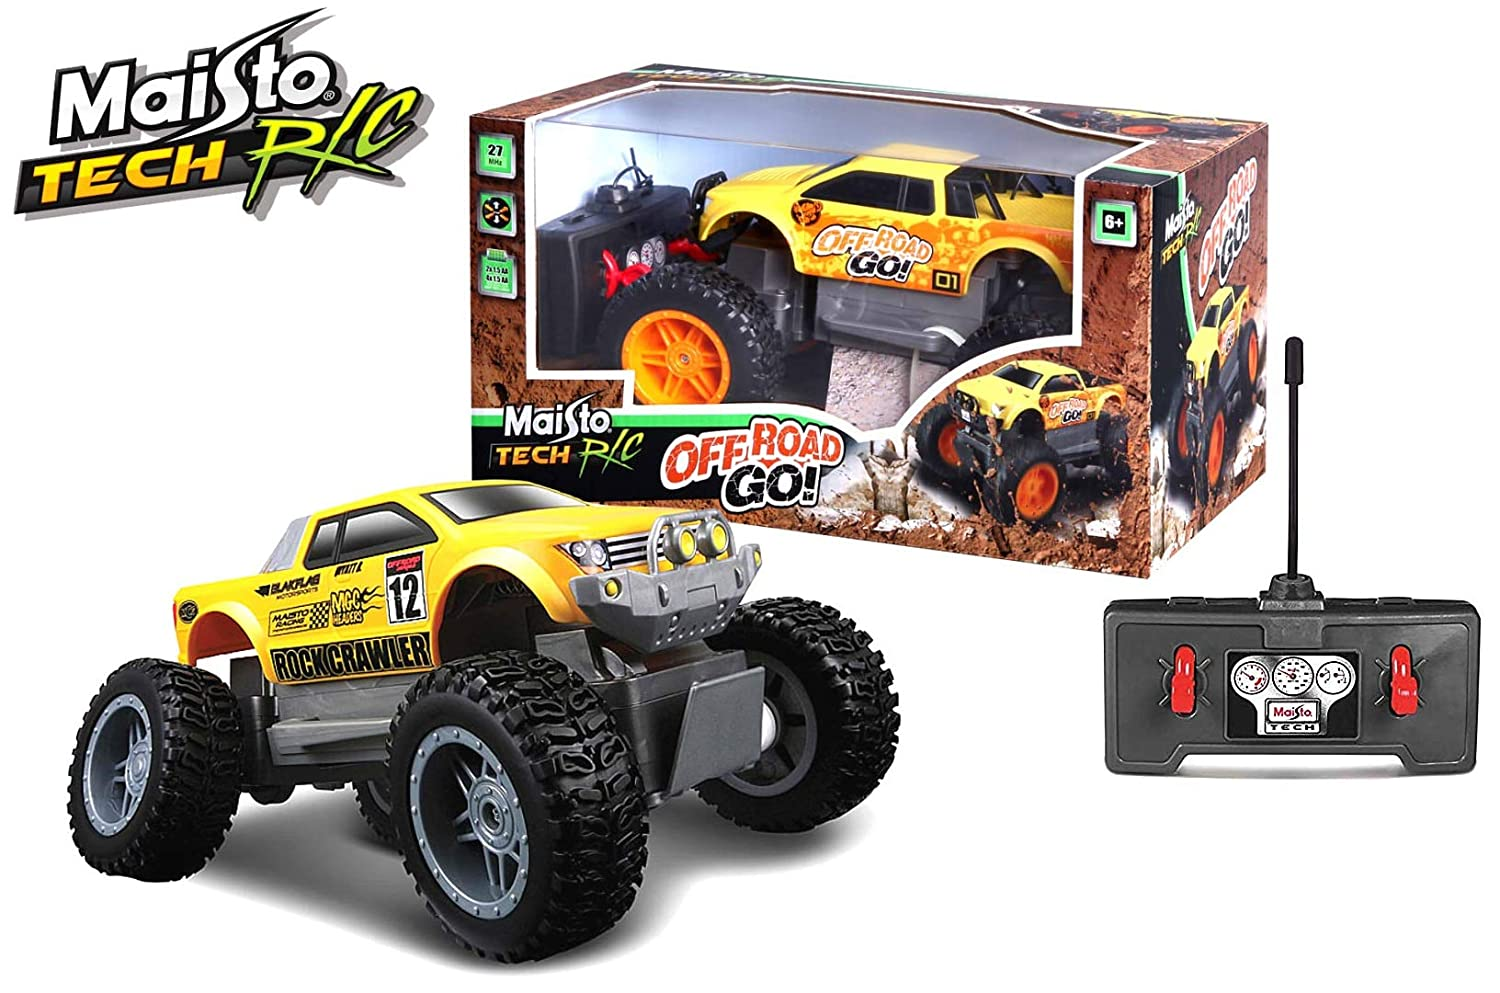 THE MAISTO ROCK CRAWLER JR (Color may vary) M81162